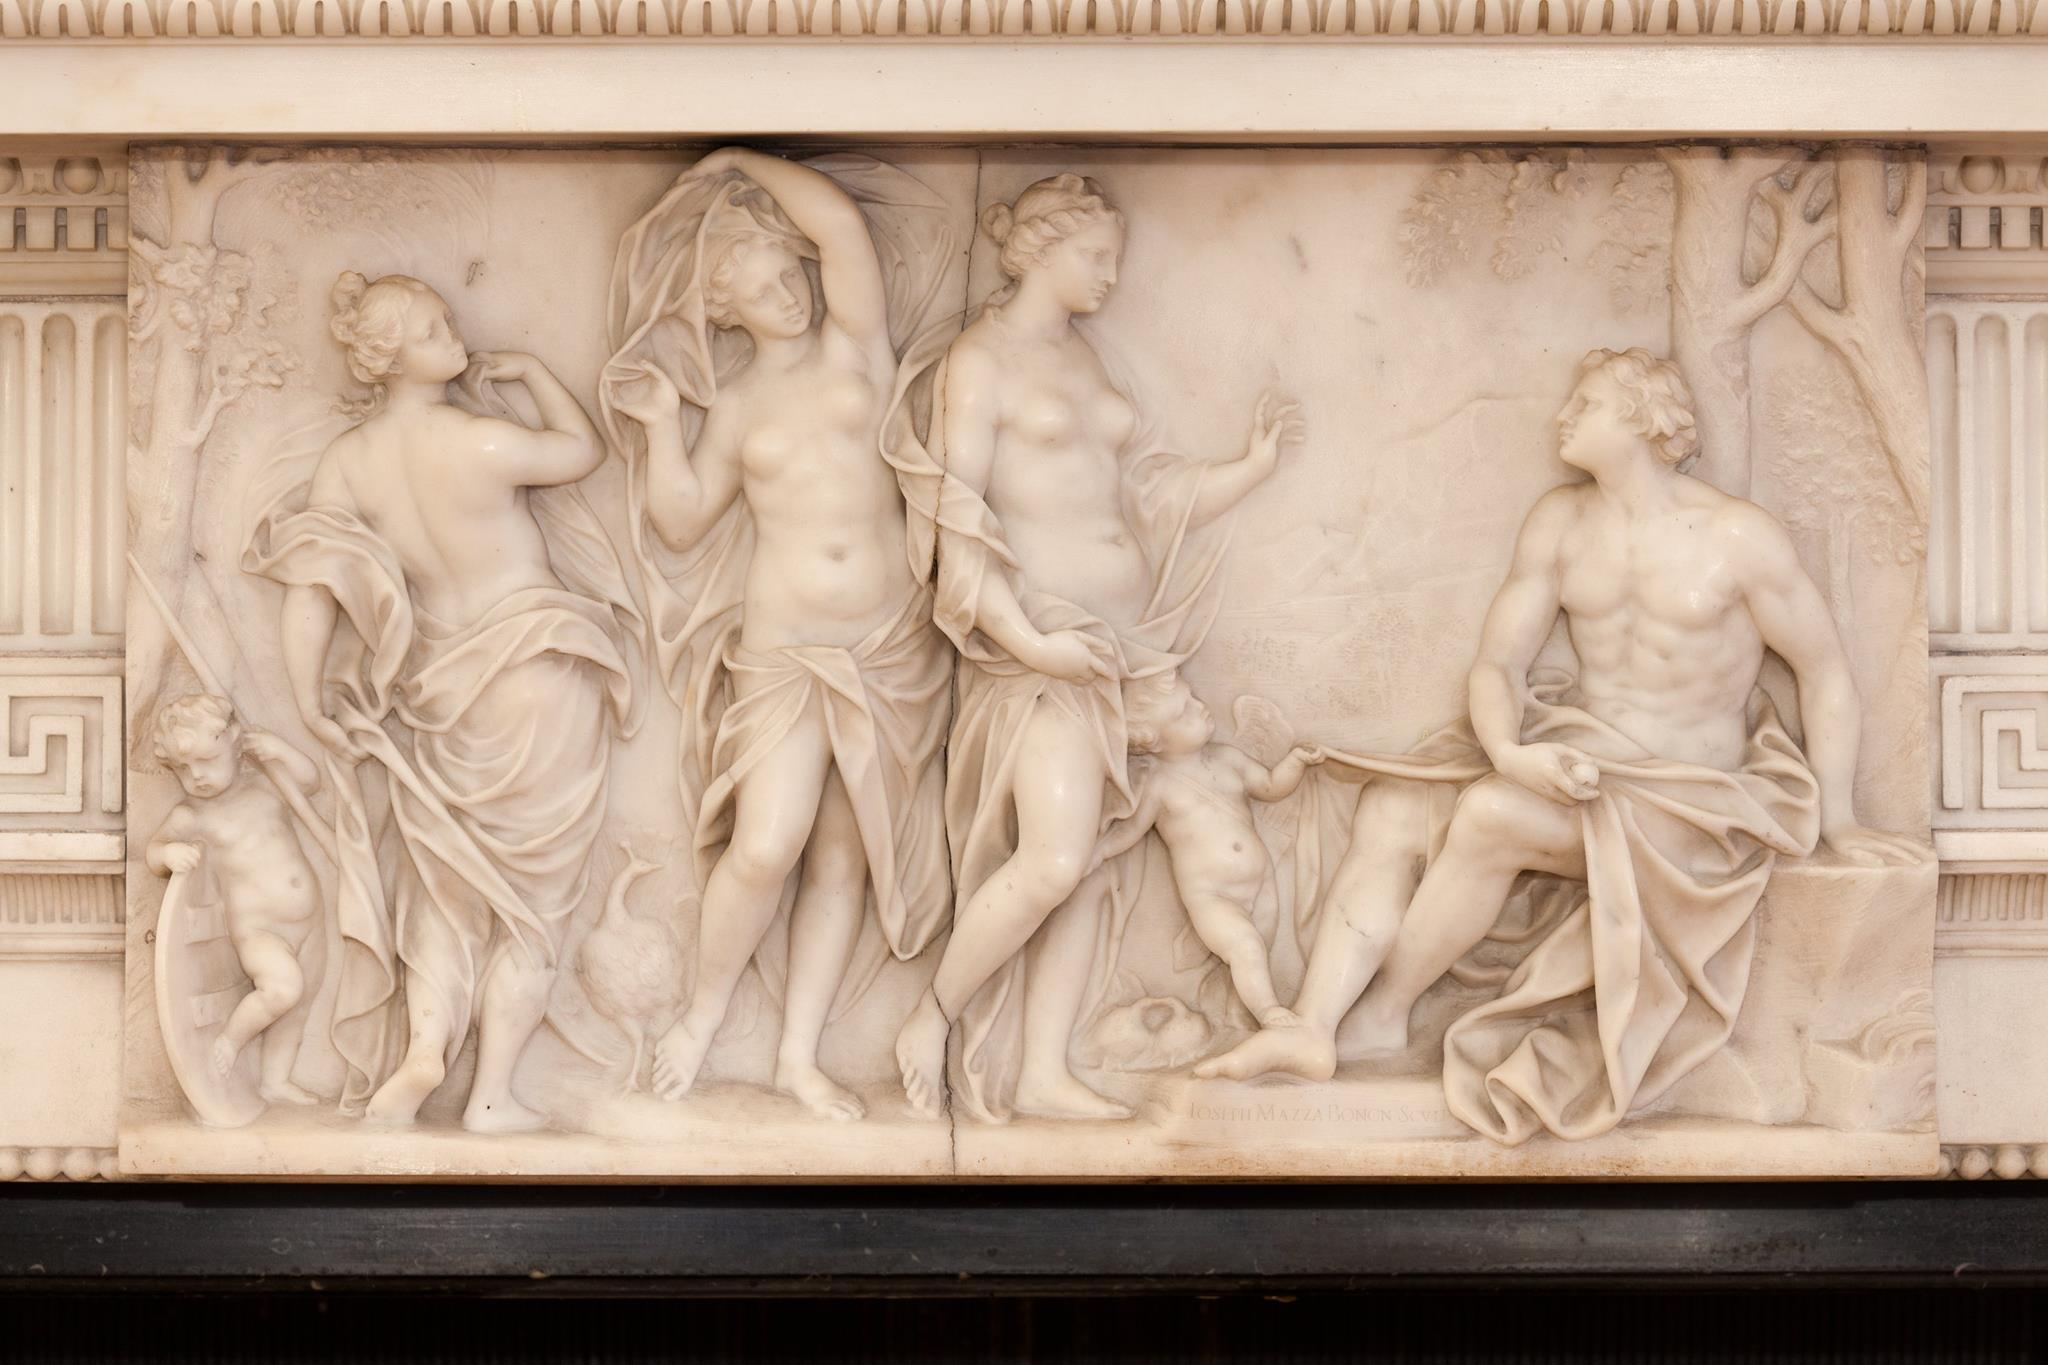 Central carving by Joseph Mazza Bonon, 1705 marble fireplace from kings weston house in orchard Street John Devall neoclassical